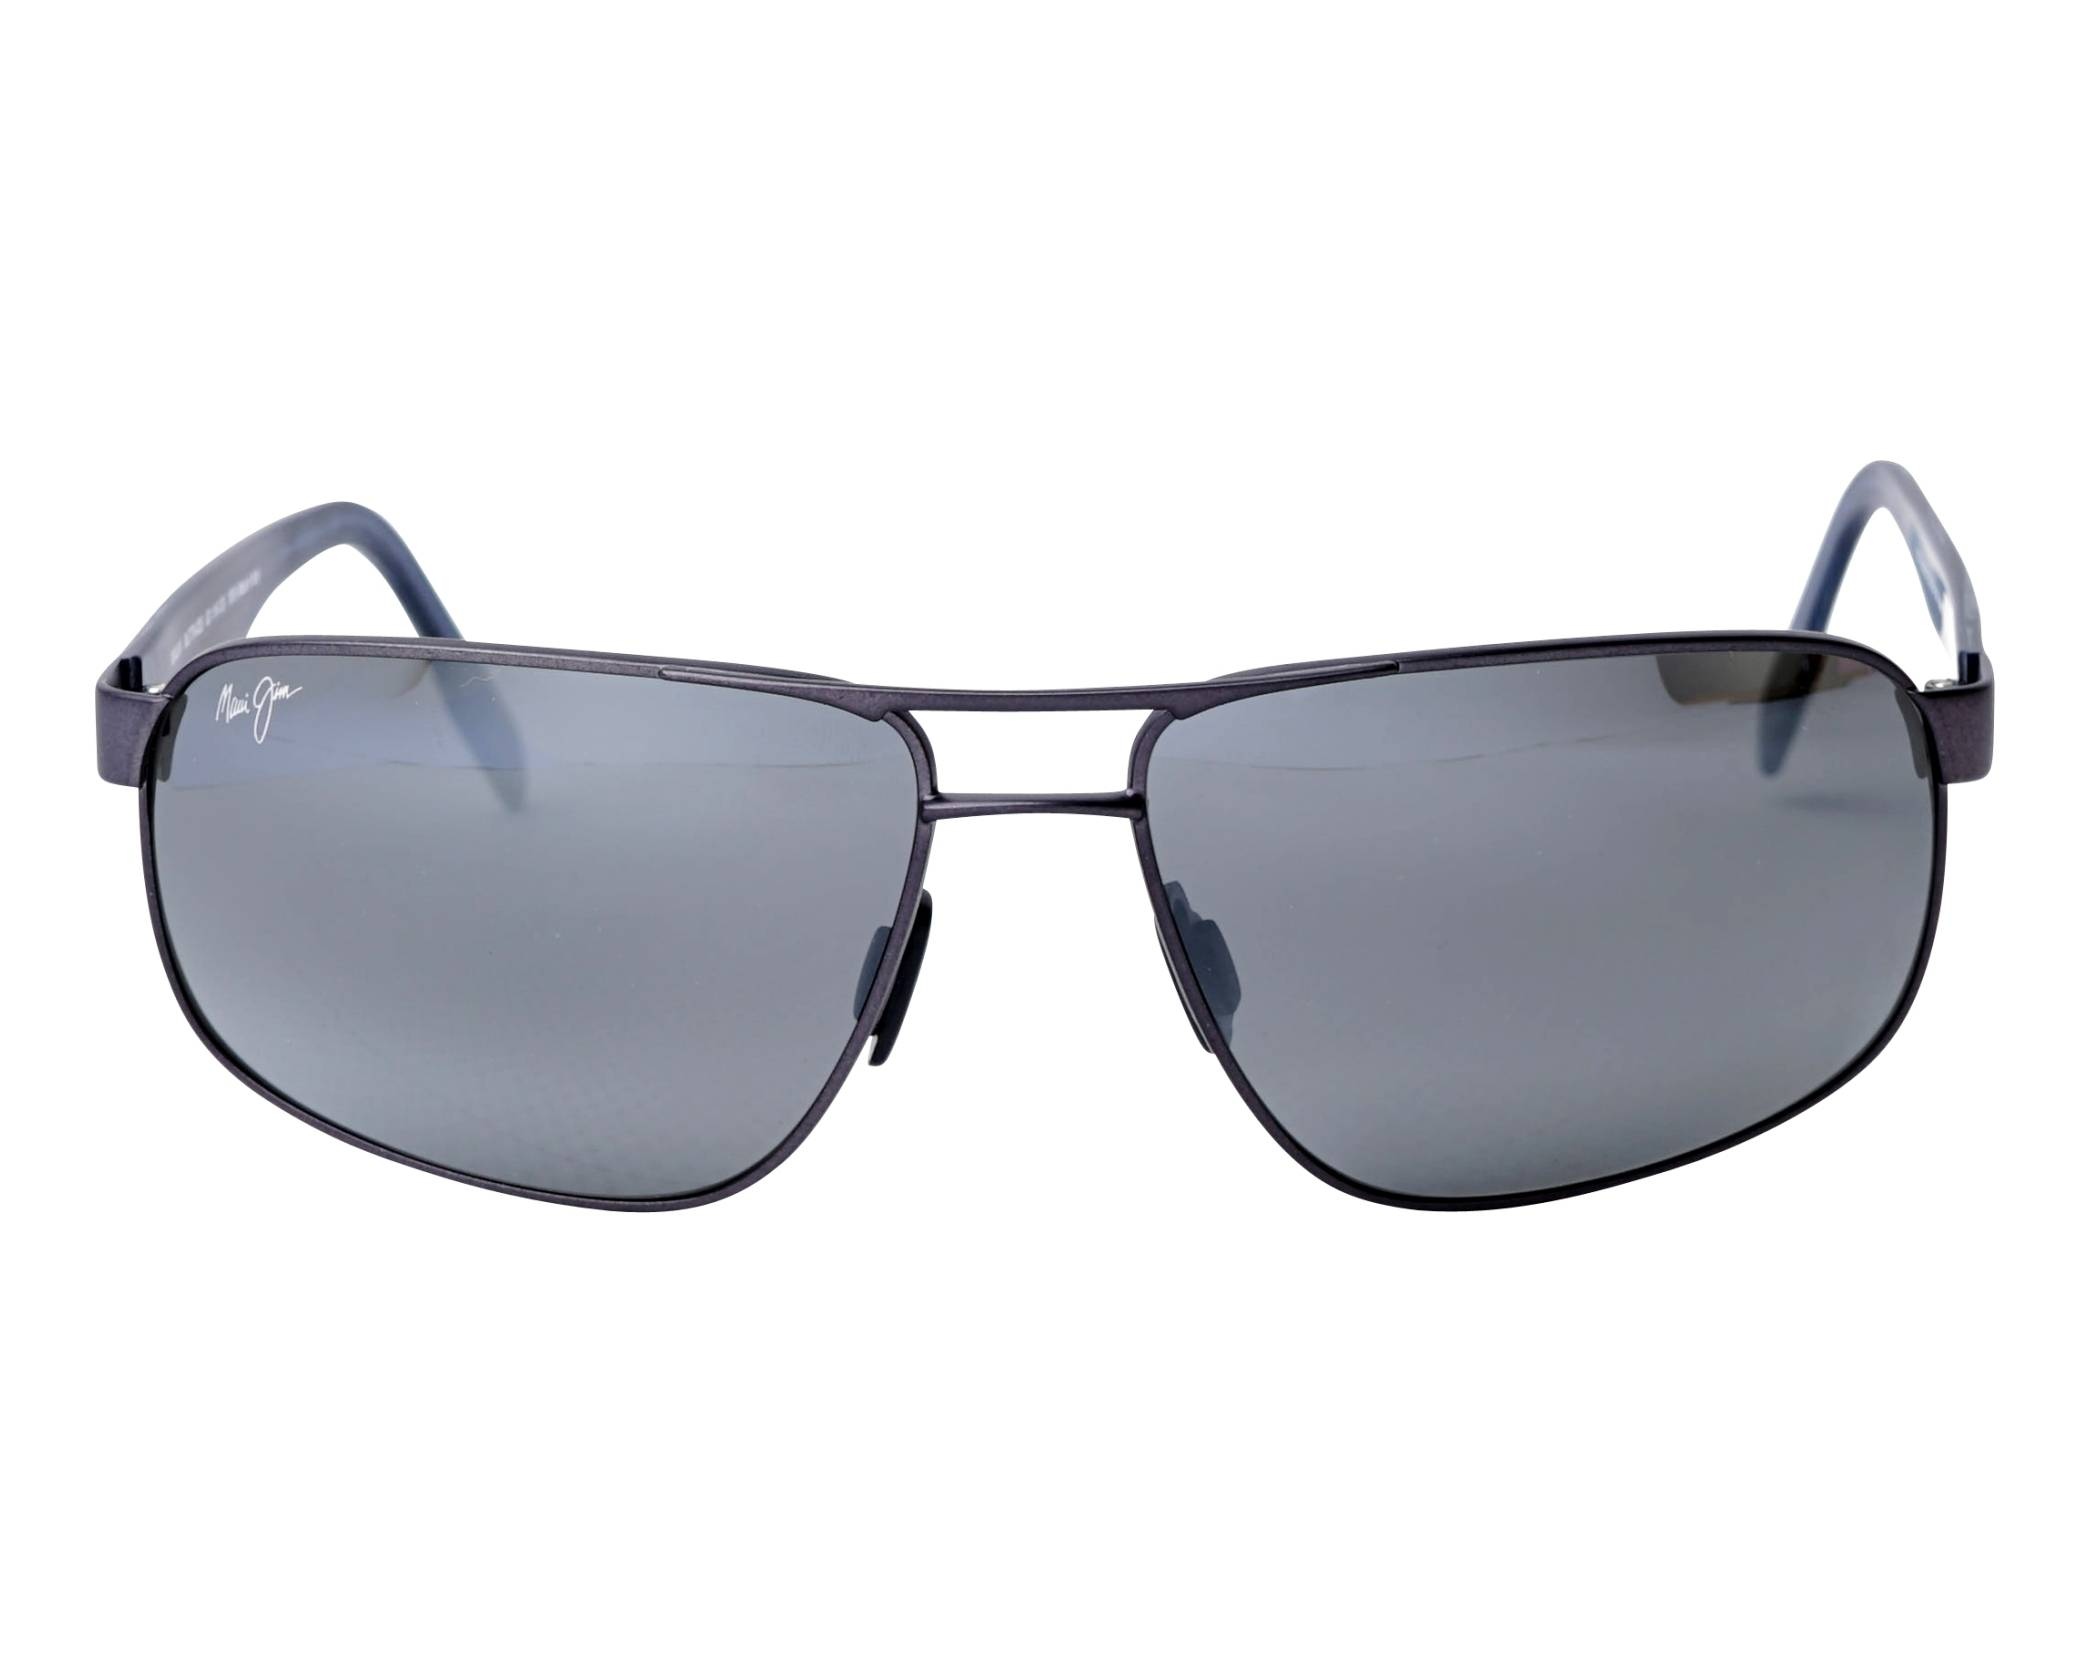 8abb7a006b Sunglasses Maui Jim WHITEHAVEN 776-02S 63-16 Black Grey front view